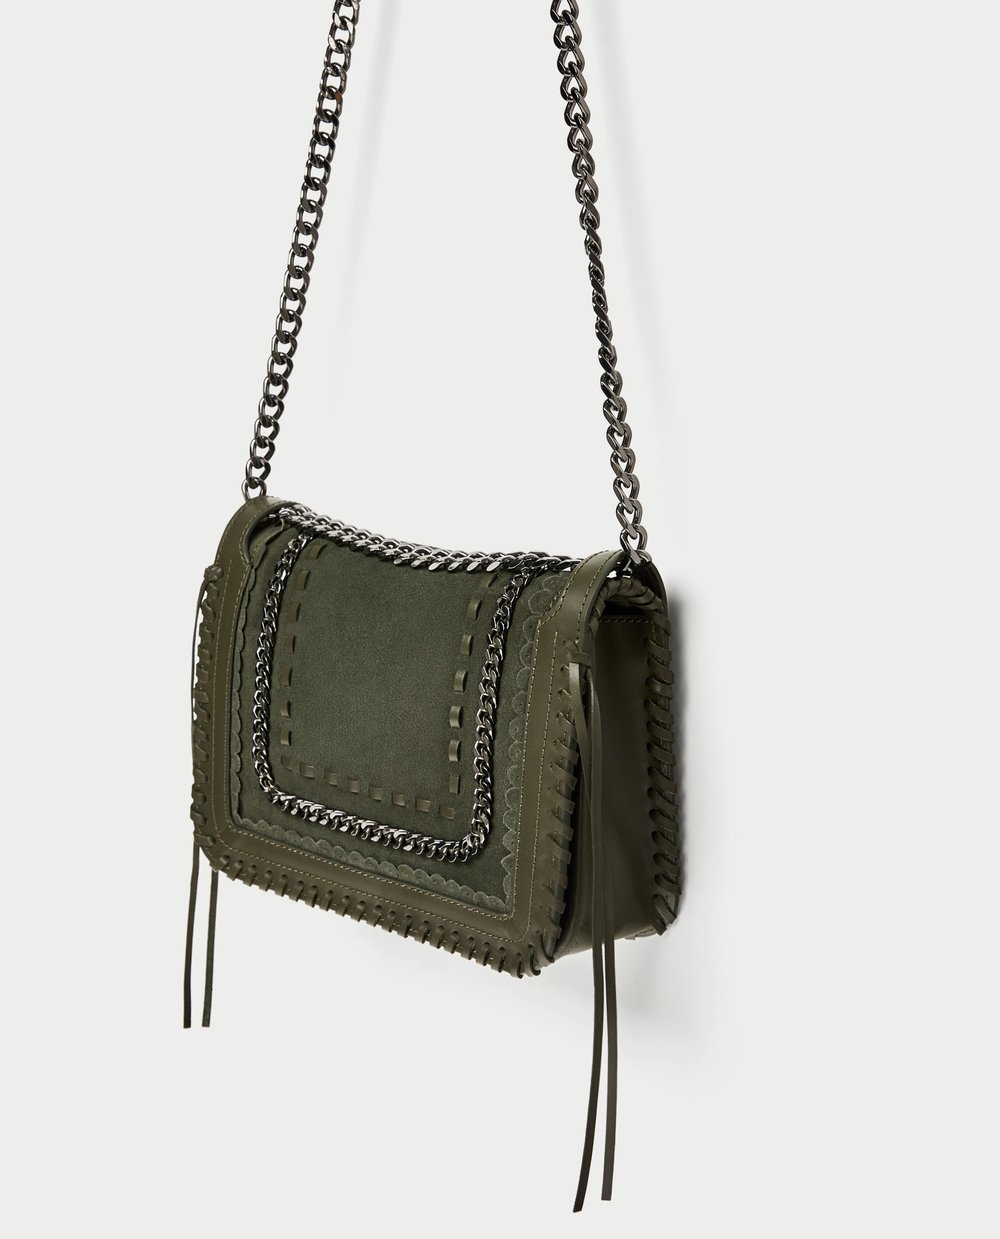 Zara Crossbody Chain Bag - 89.90 CAD